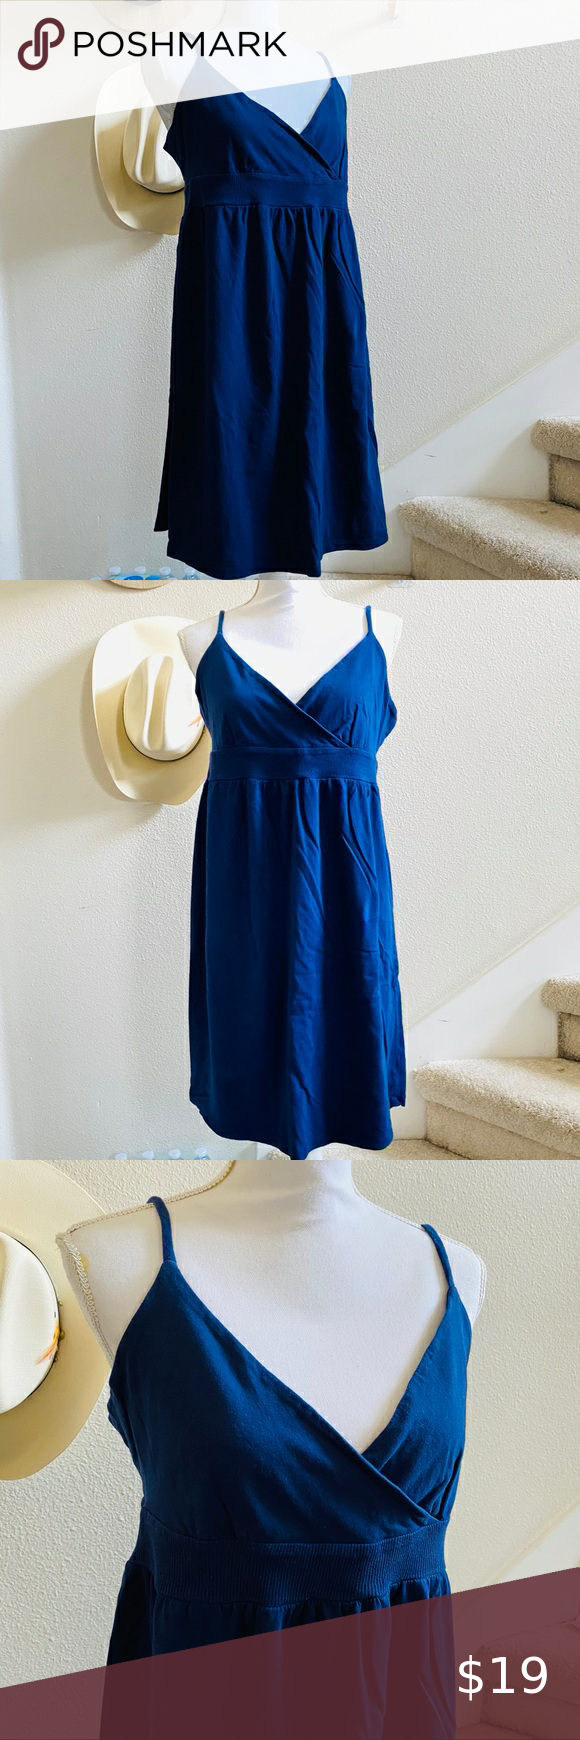 OLD NAVY cotton knit navy dress beach spring break Size large cotton knit adjustable straps cross front no flaws hits at or above knee Old Navy Dresses